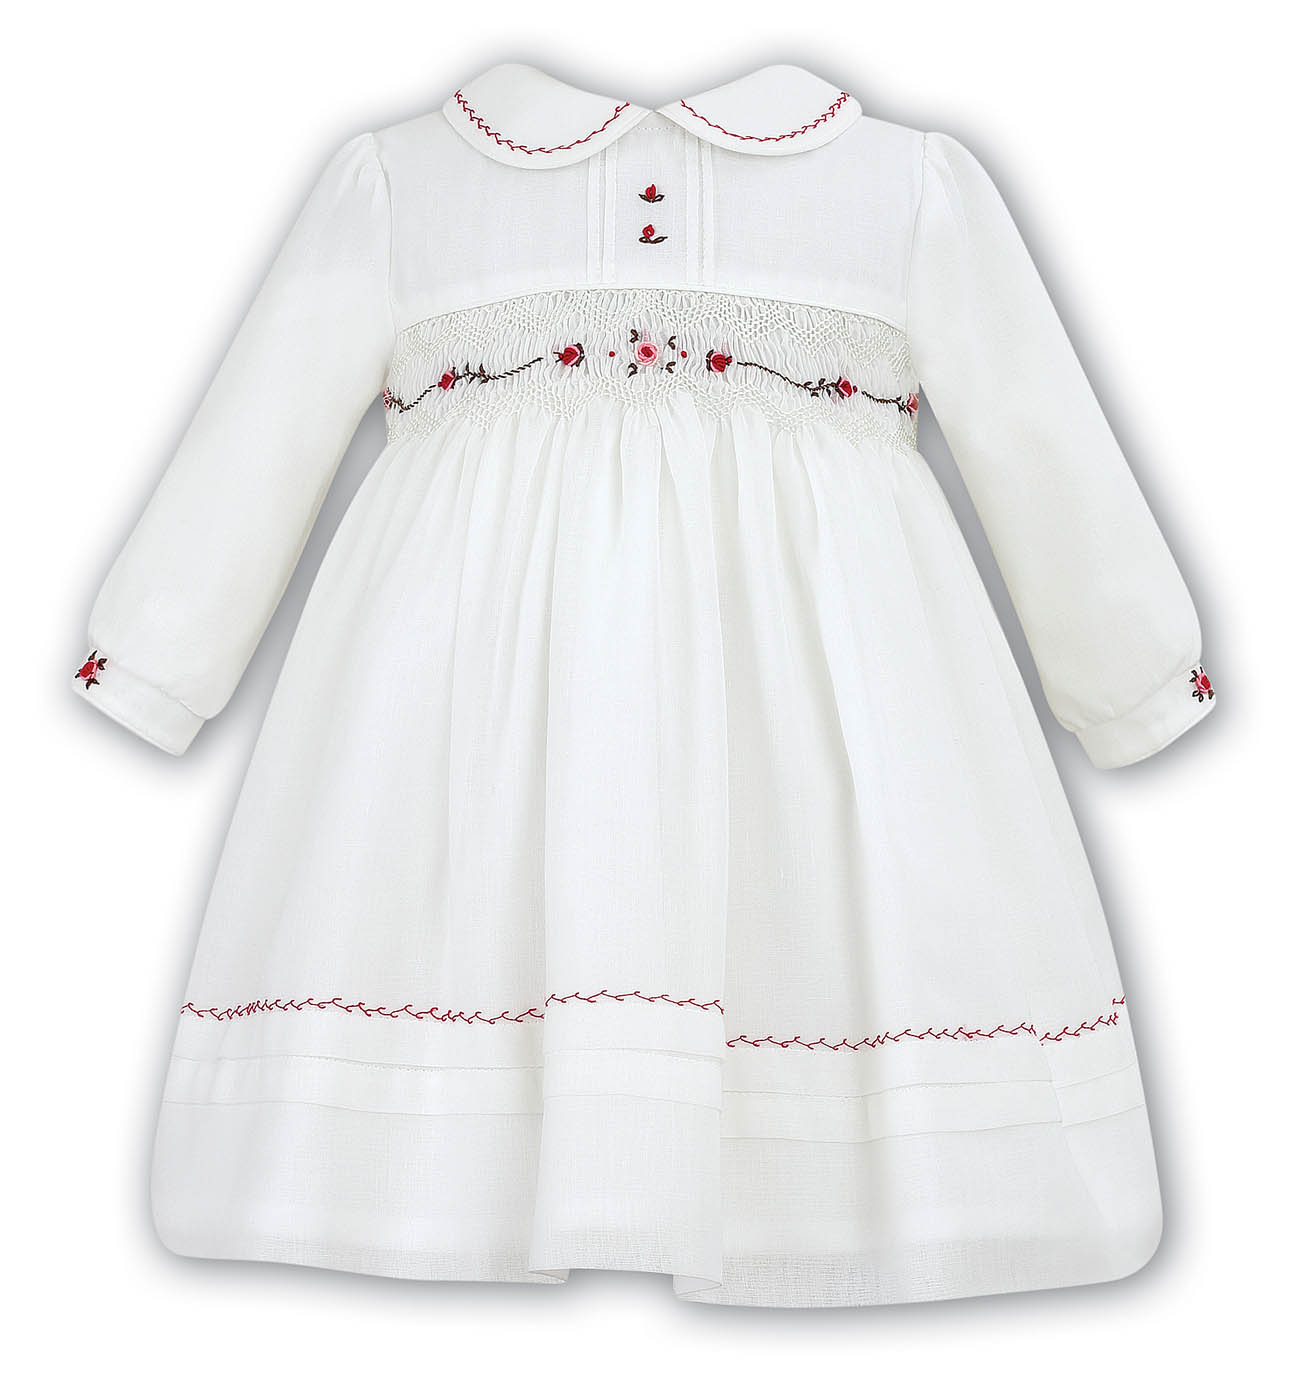 Sarah Louise Ivory Smocked Dress With Cranberry